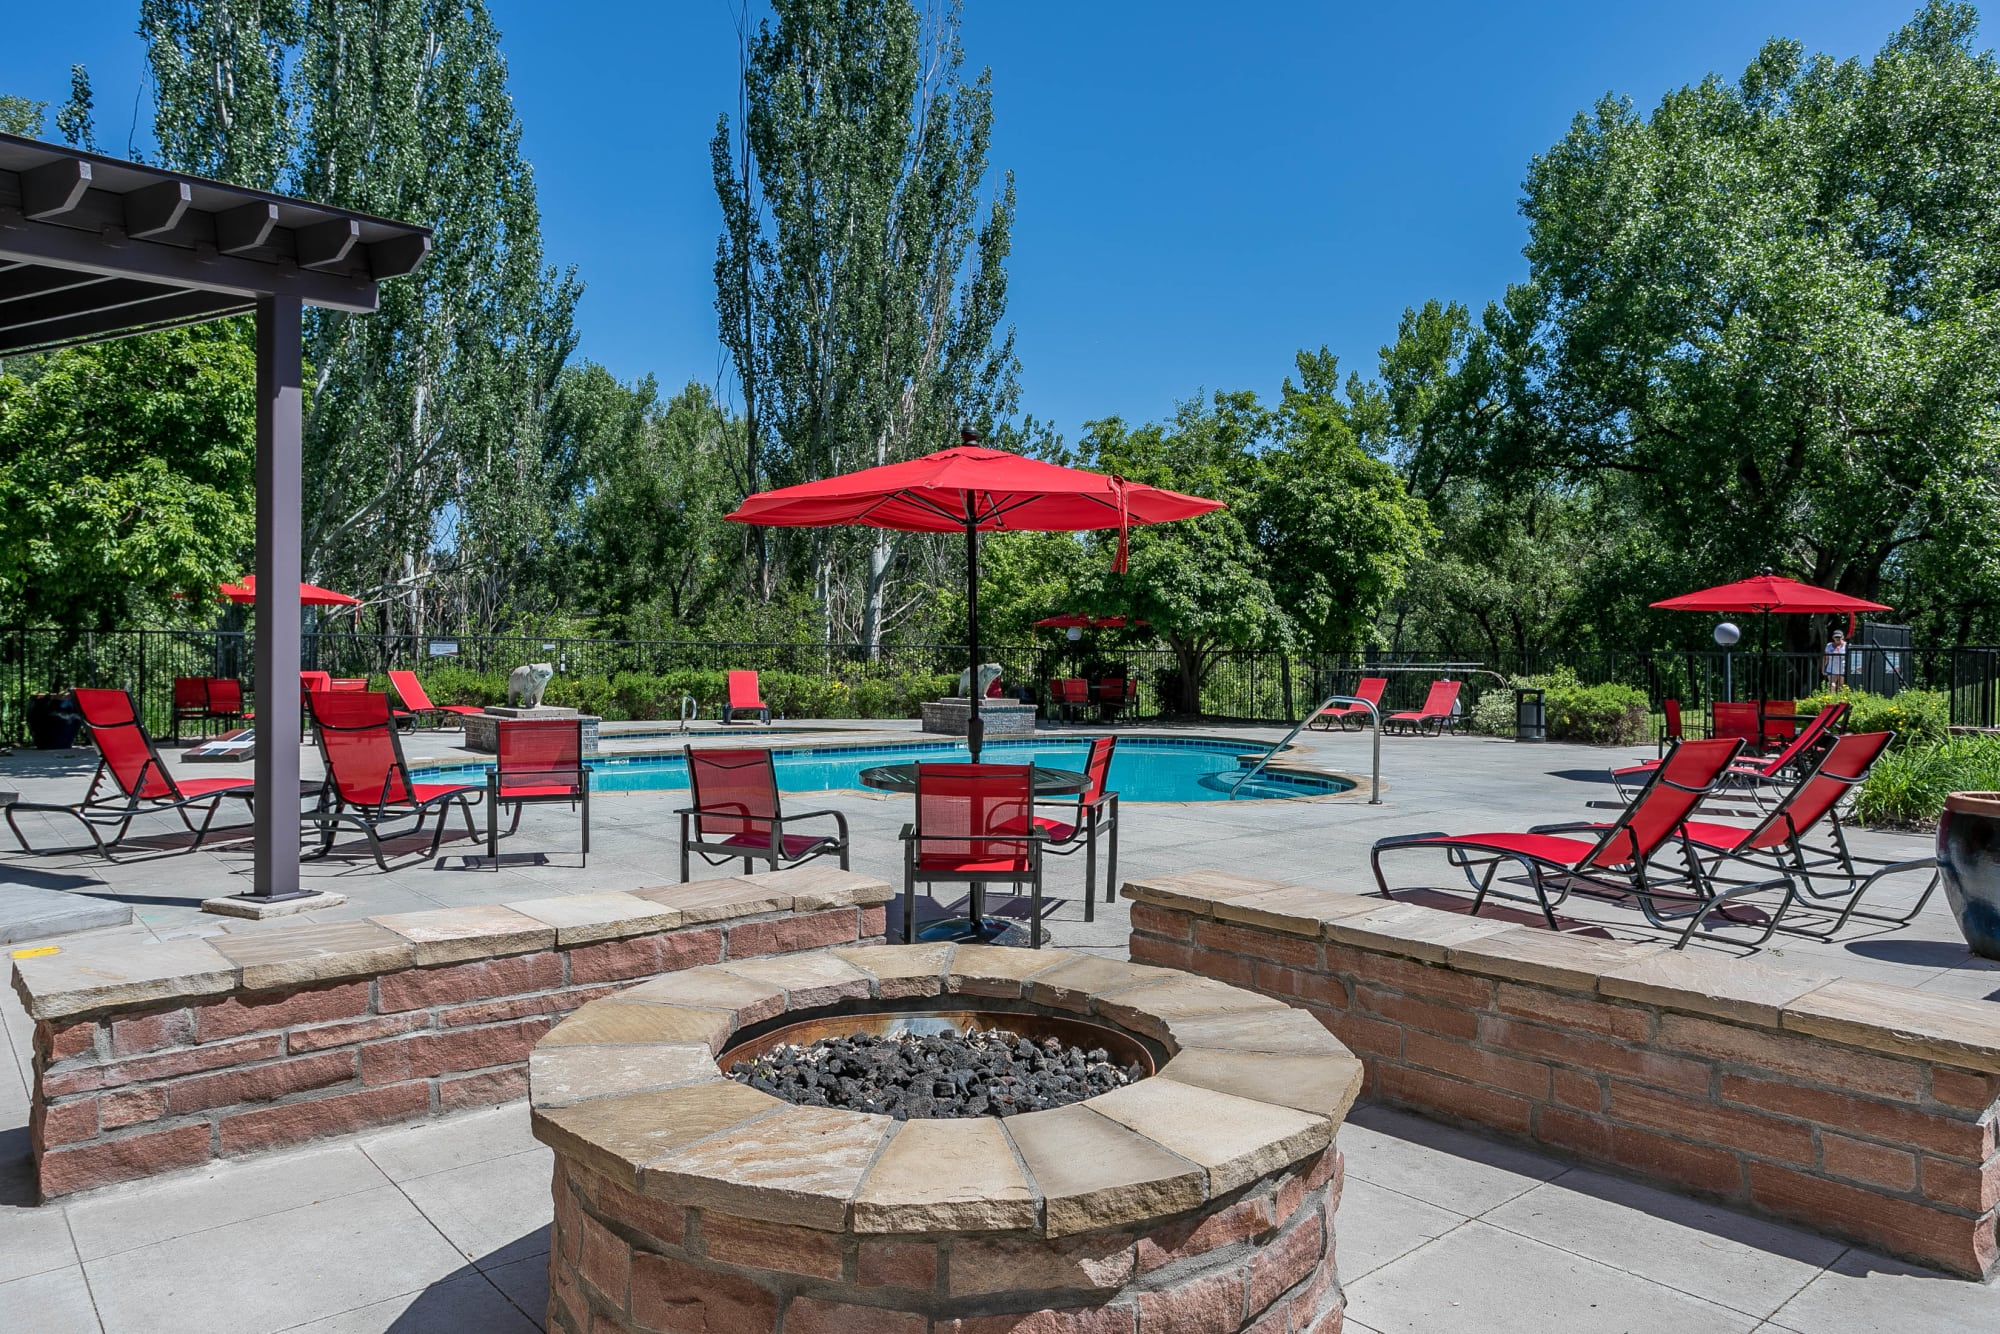 The poolside fire pit lounge area at The Crossings at Bear Creek Apartments in Lakewood, Colorado